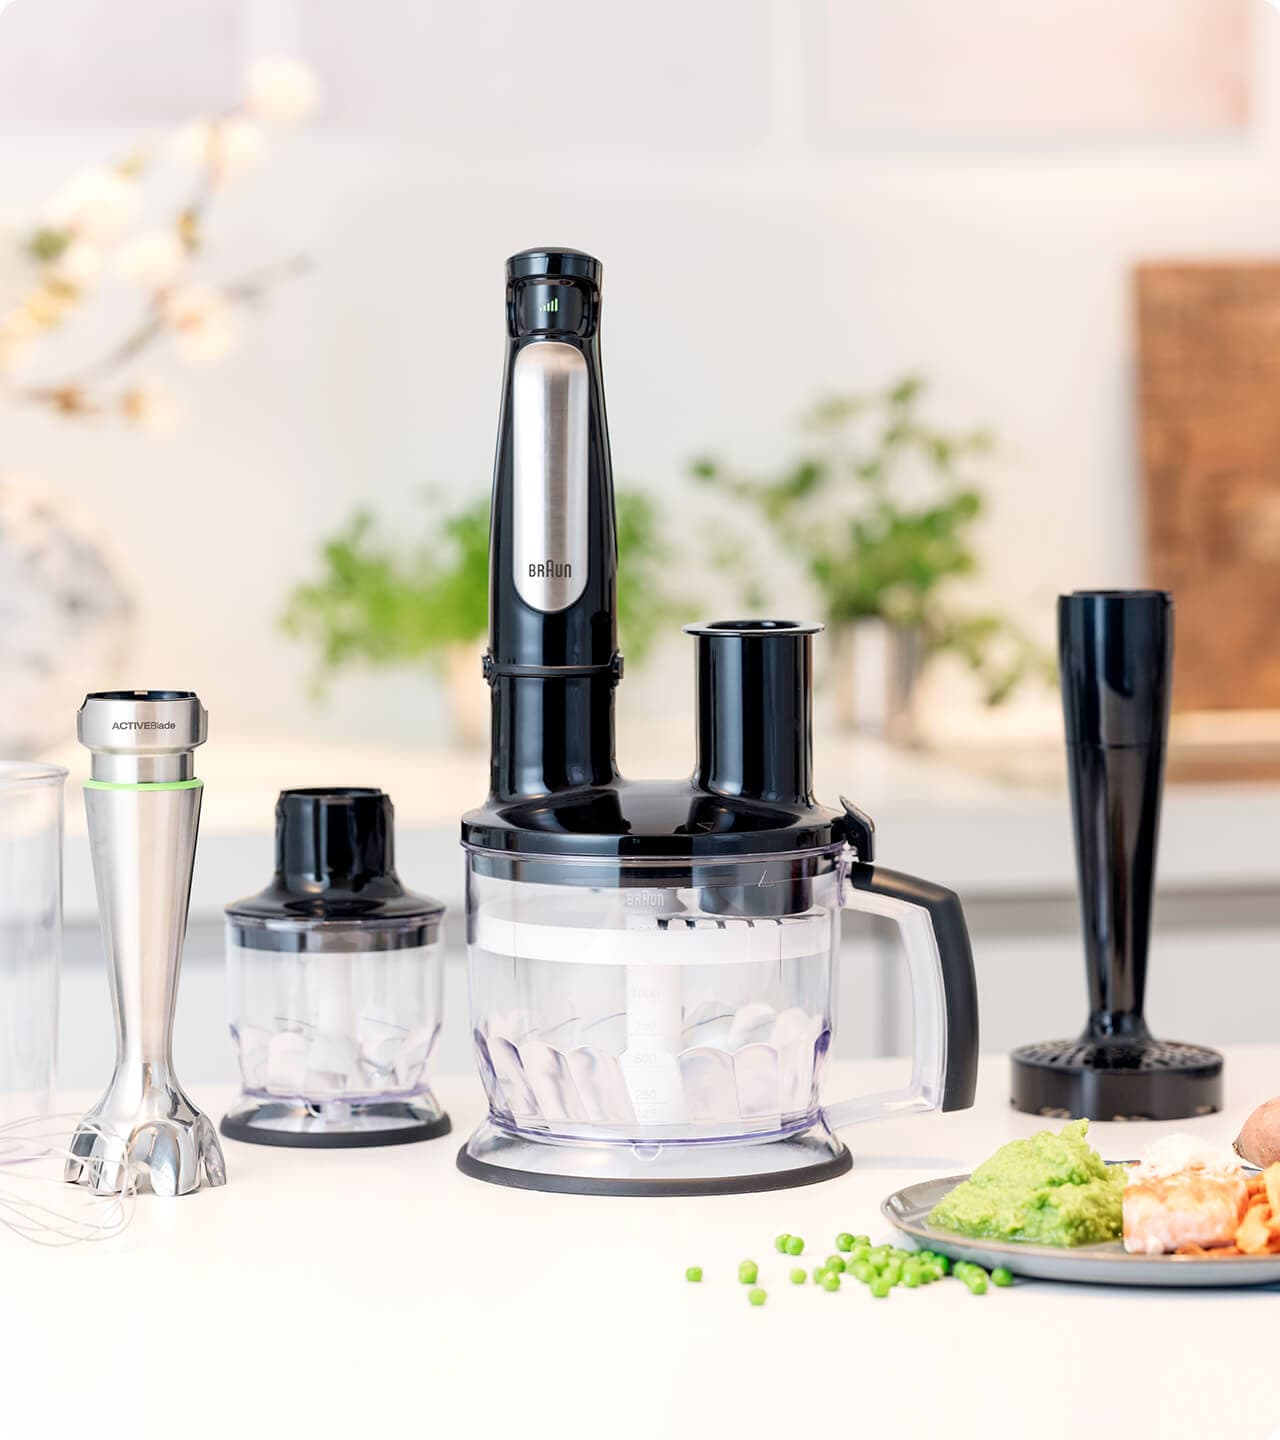 Braun Multiquick hand blenders  – maximum versatility